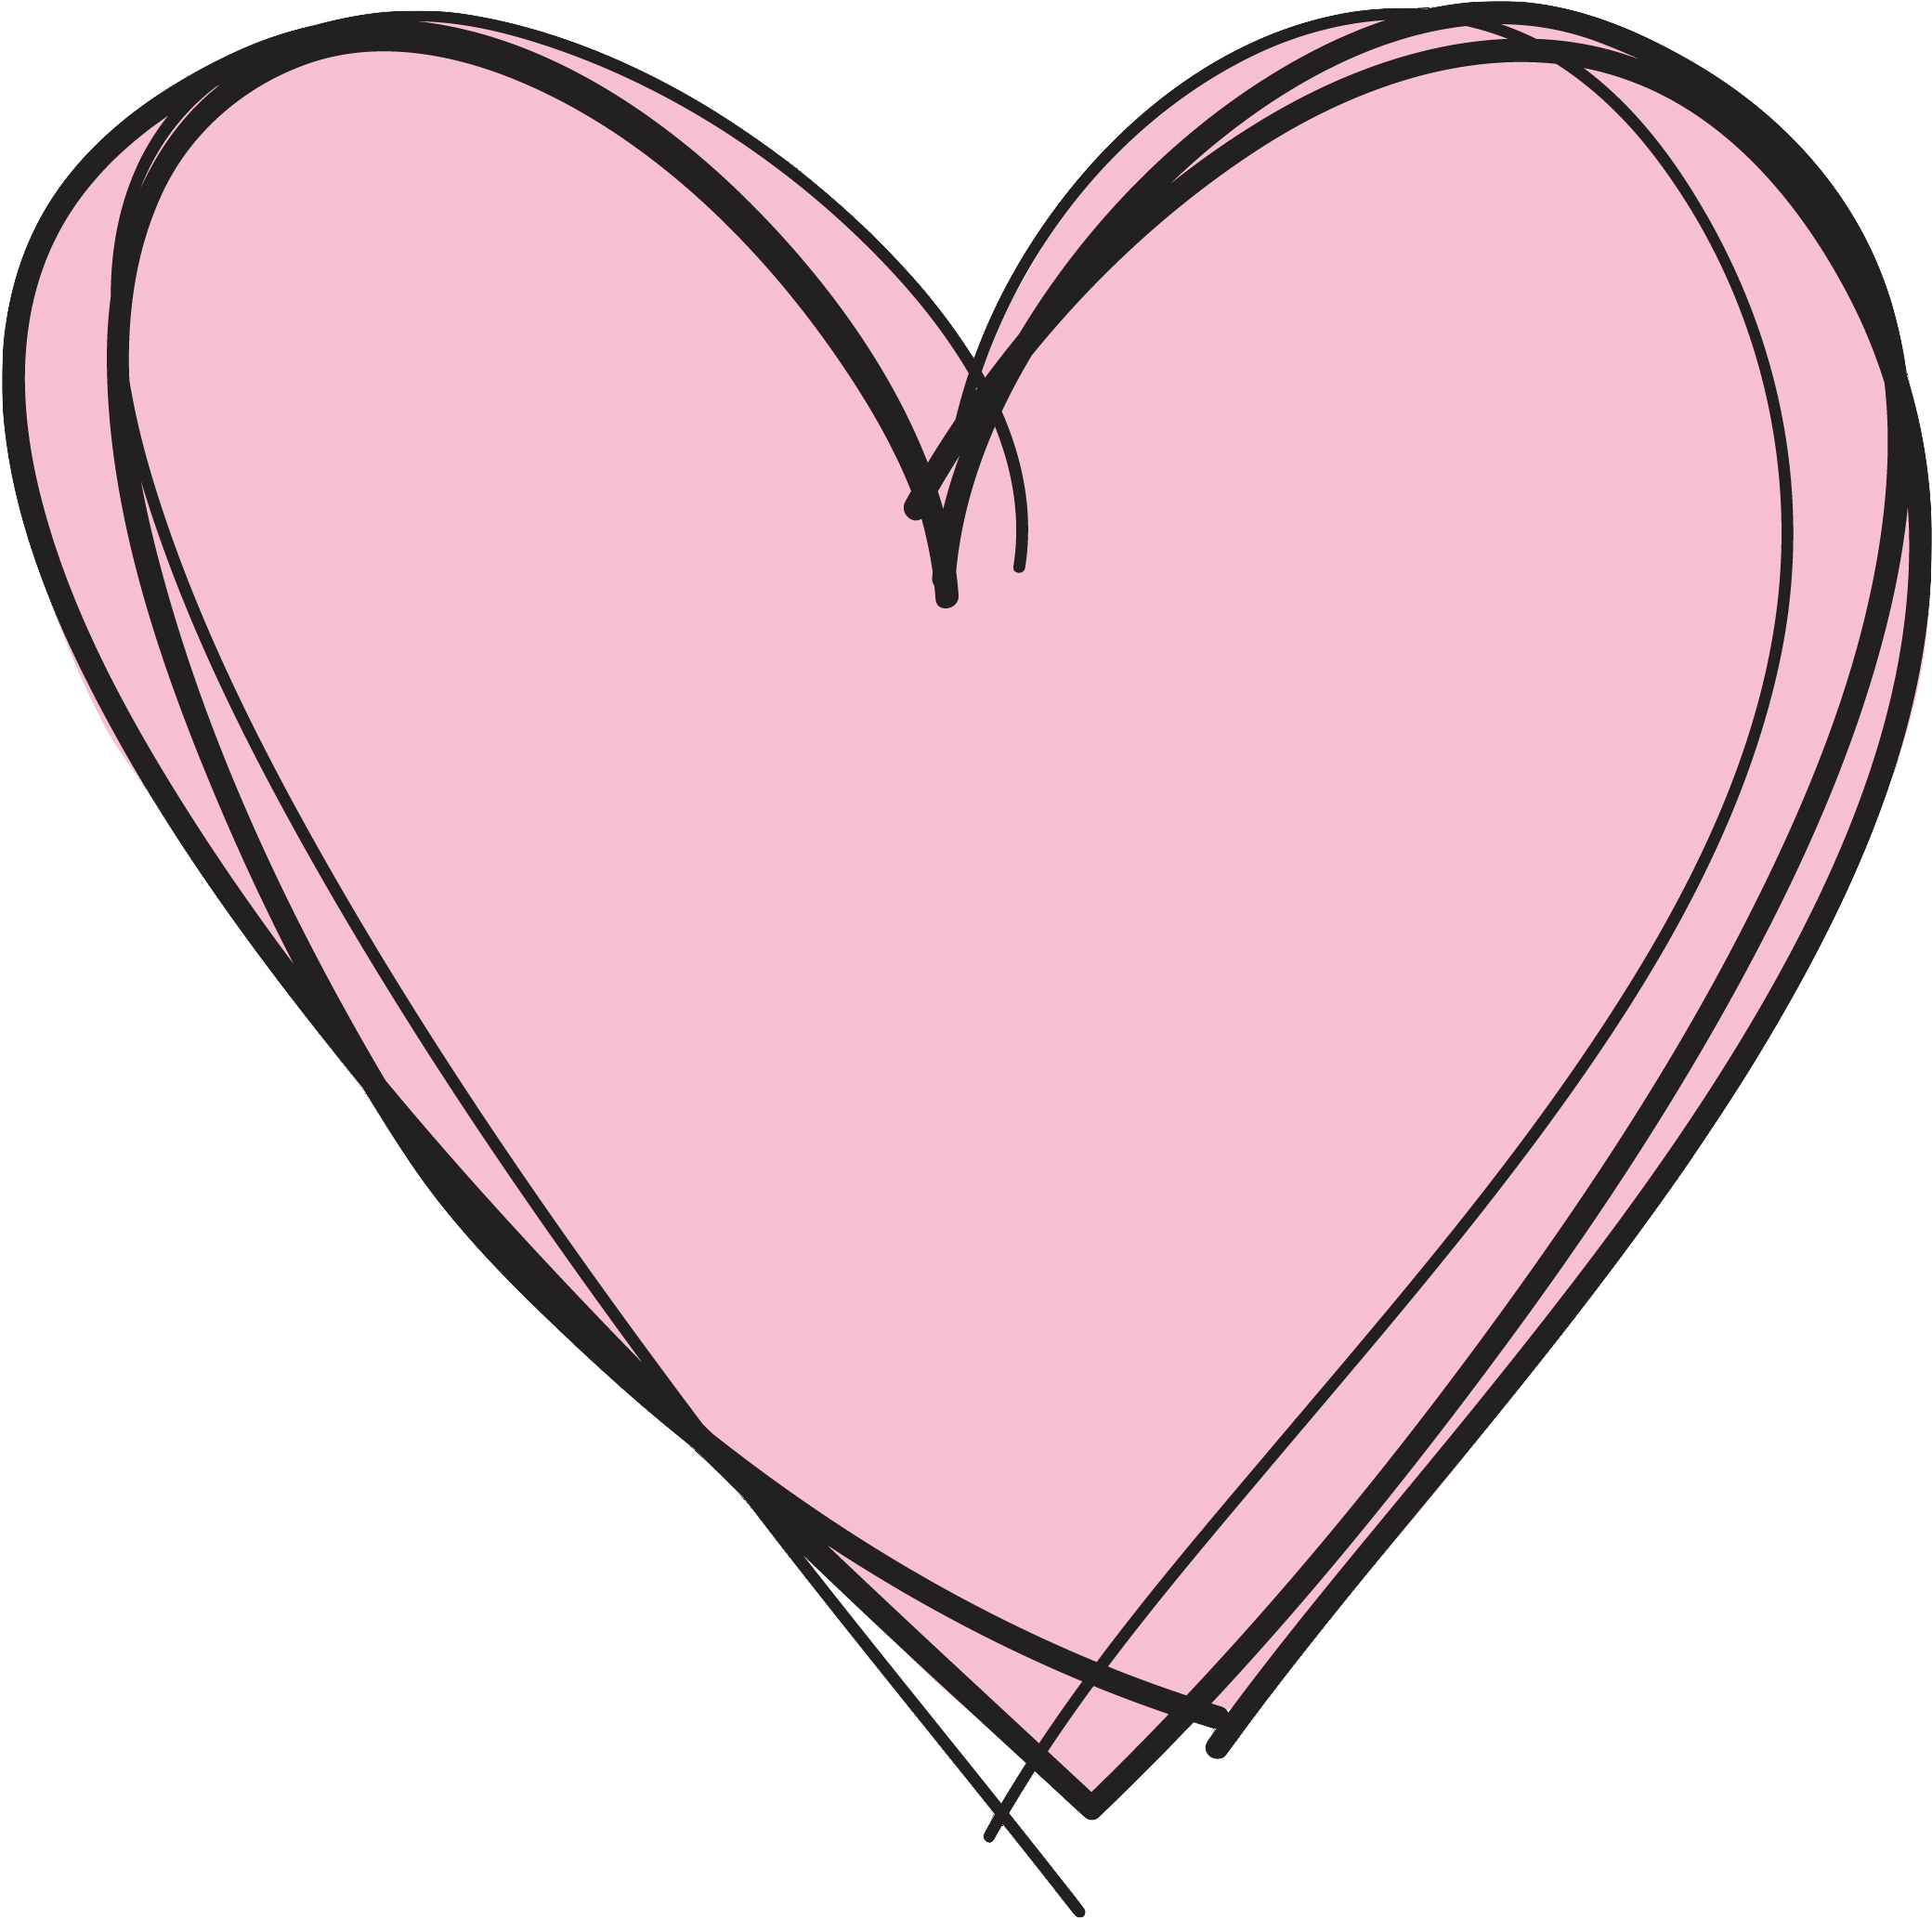 View Full Size Pink Heart Clipart No Background Cute Transparent Background Heart Clipart Png Download Pink Heart Heart Images Love Wallpaper Backgrounds